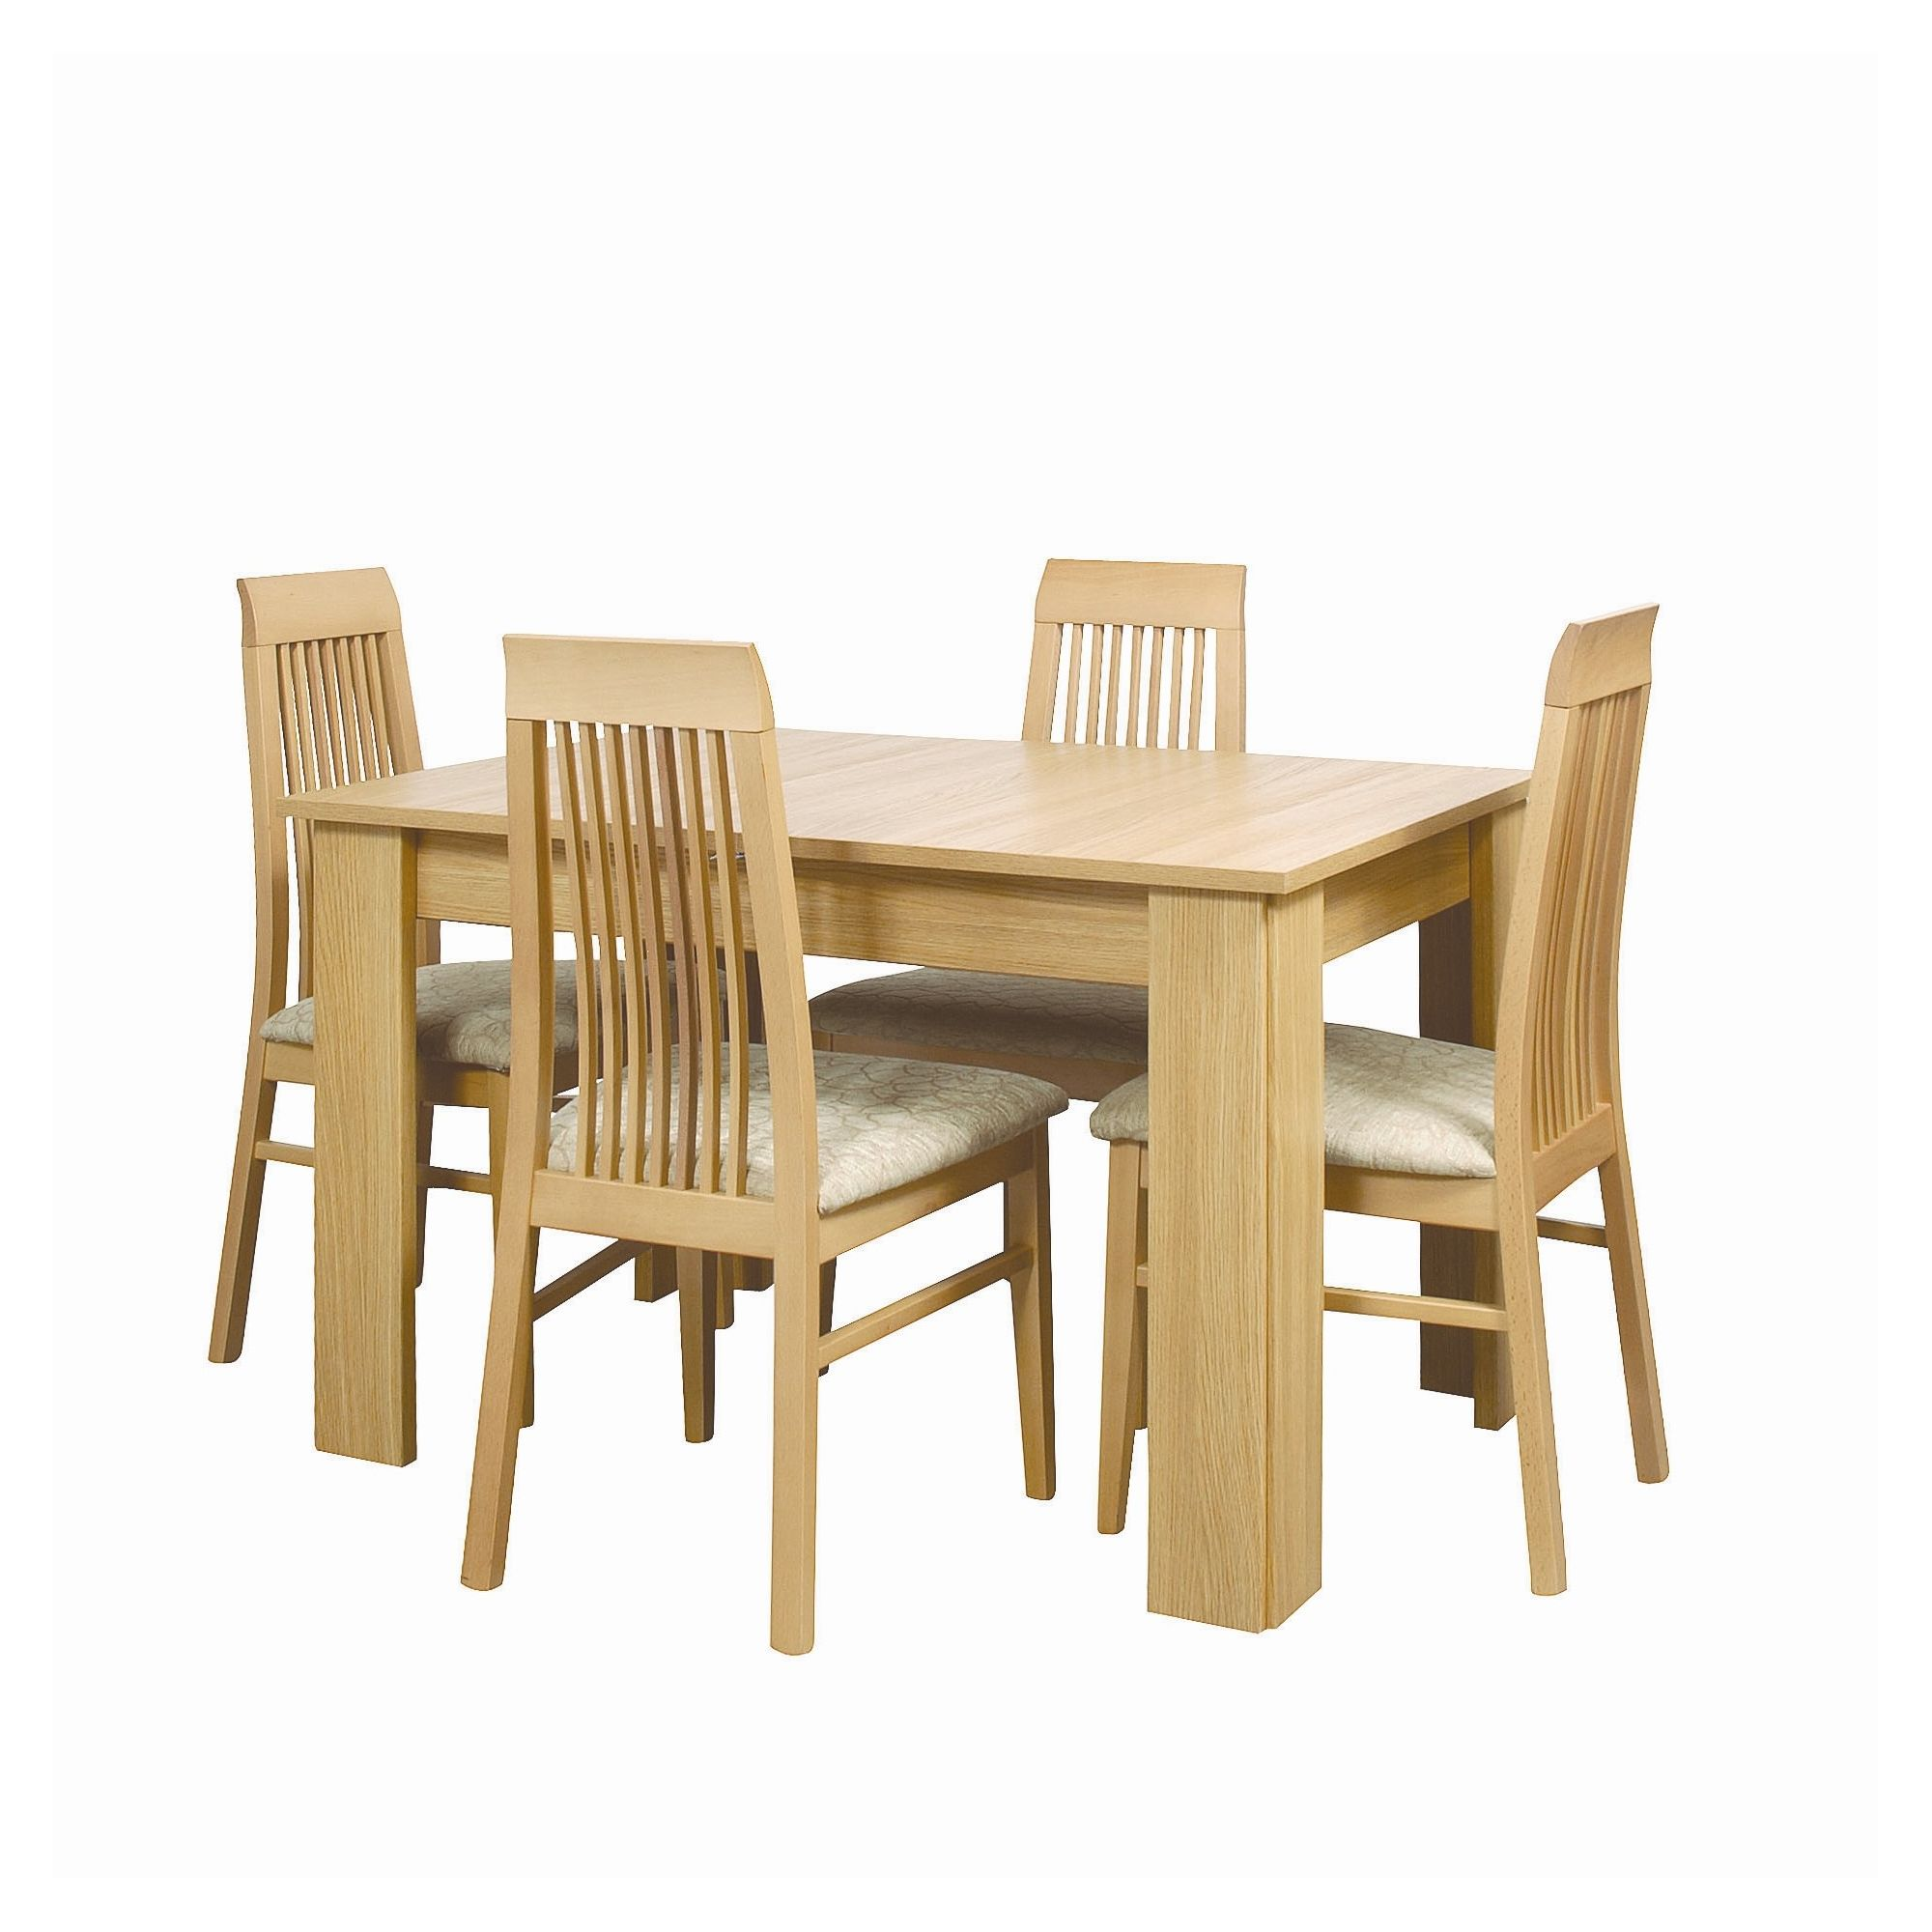 Other Caxton Huxley 4 Leg Extending Dining Table with 6 Chairs in Light Oak